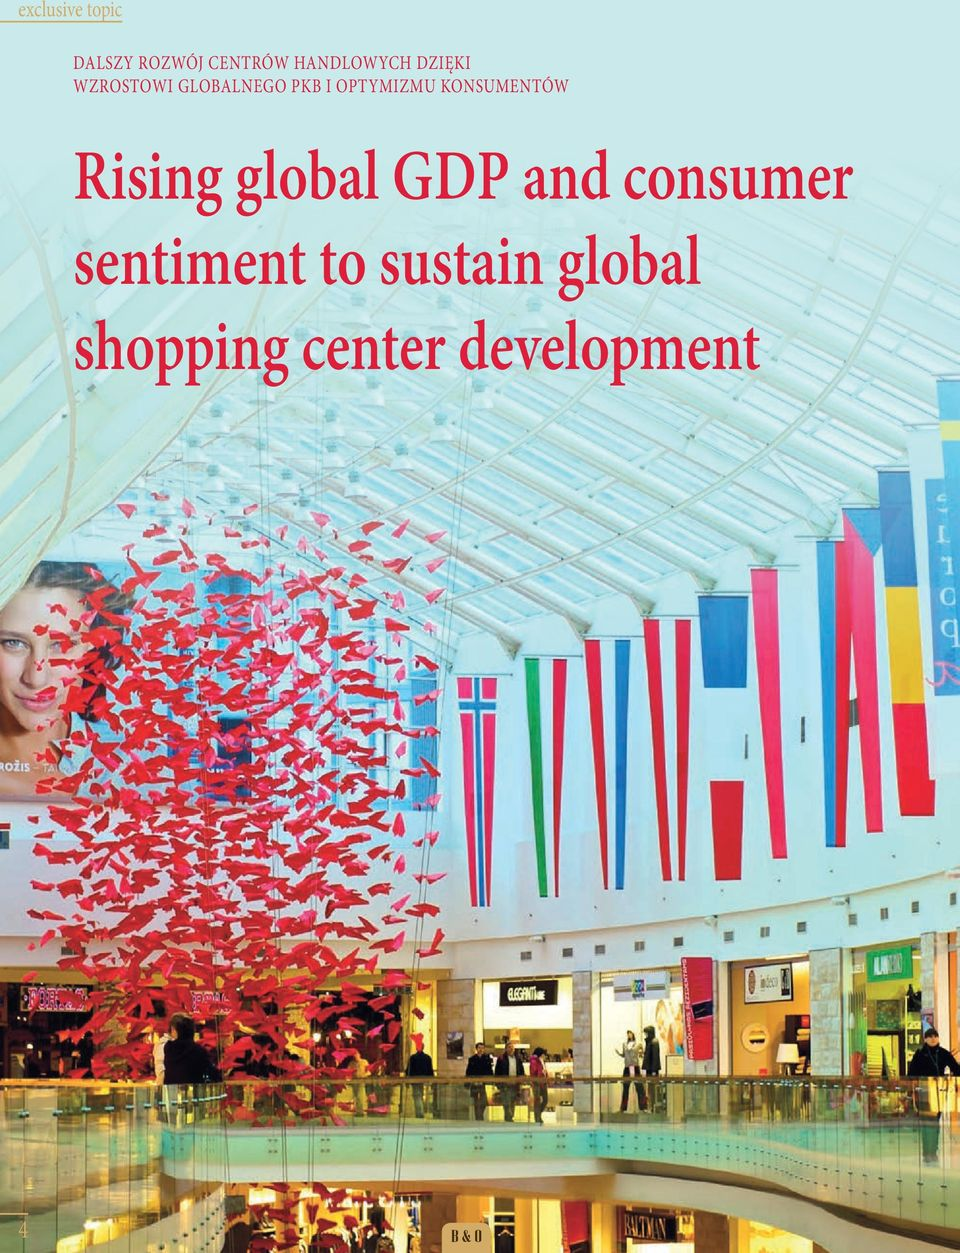 KONSUMENTÓW Rising global GDP and consumer